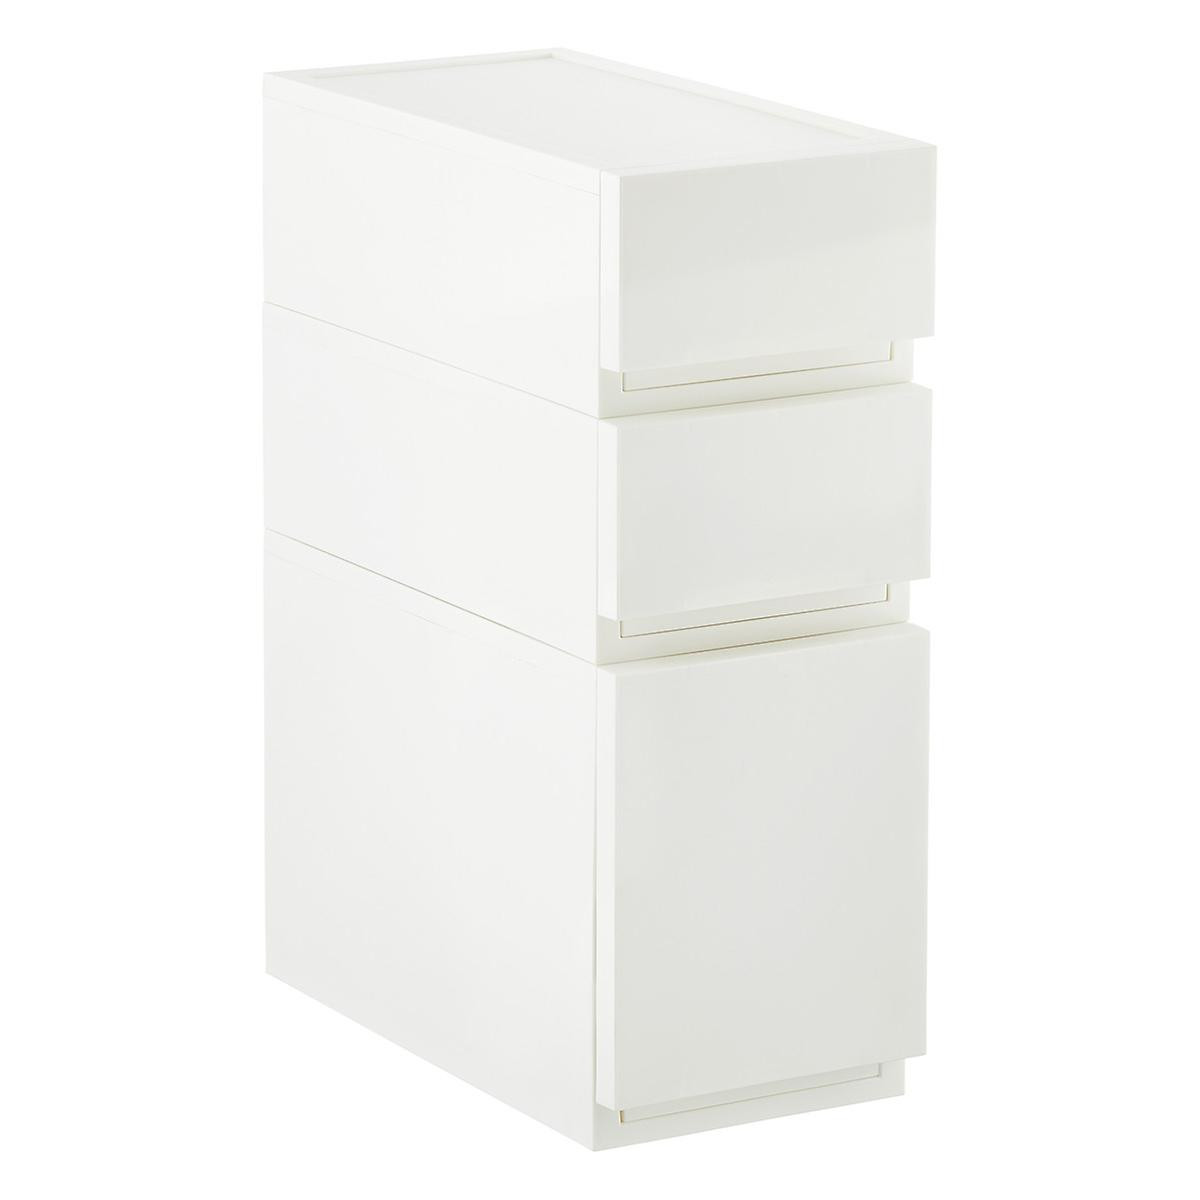 White Opaque Modular Stackable Drawers The Container Store